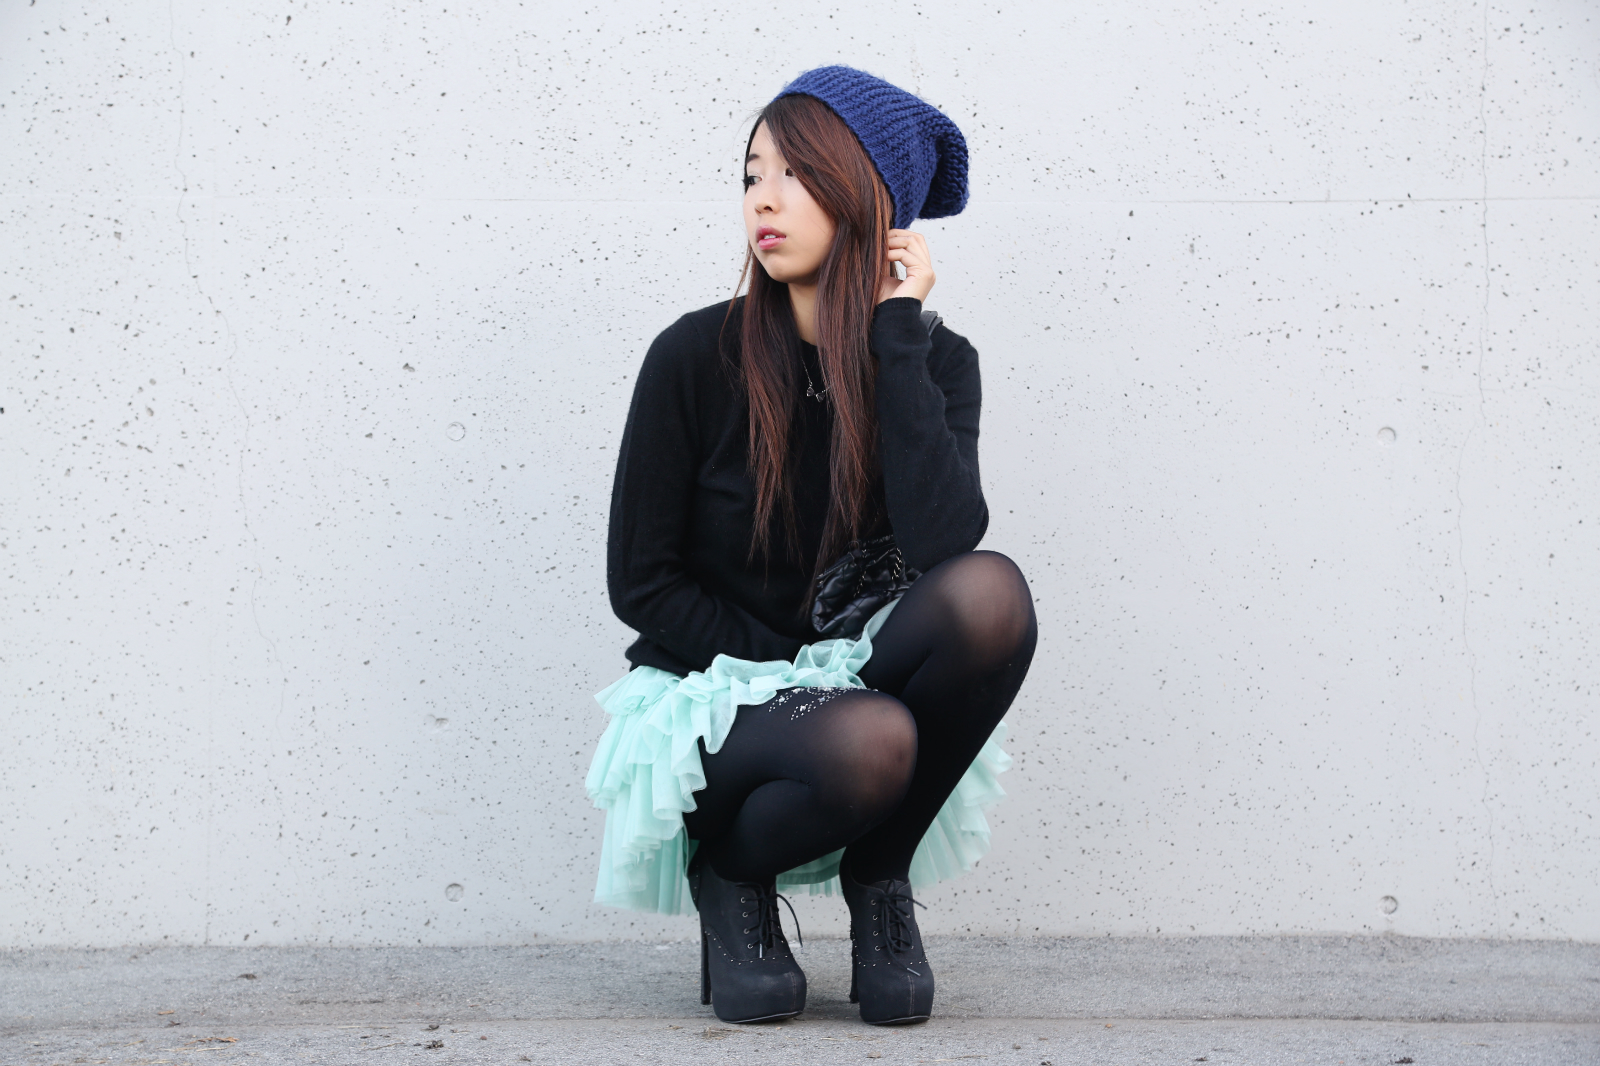 chanel, embellished, tights, chic, edgy, cool, ulzzang, asian, girl, cashmere, sweater, teal, seqiuns, tutu, aquamarine, unique, charisma c, tights, wraphilosophy, anainspirations, skater, punk, cute, adorable, hairstyle, beanie, teen, girl, pretty, korean, chinese, japanese, style, ootd, outfit, dress, kawaii, ally gong, tights,